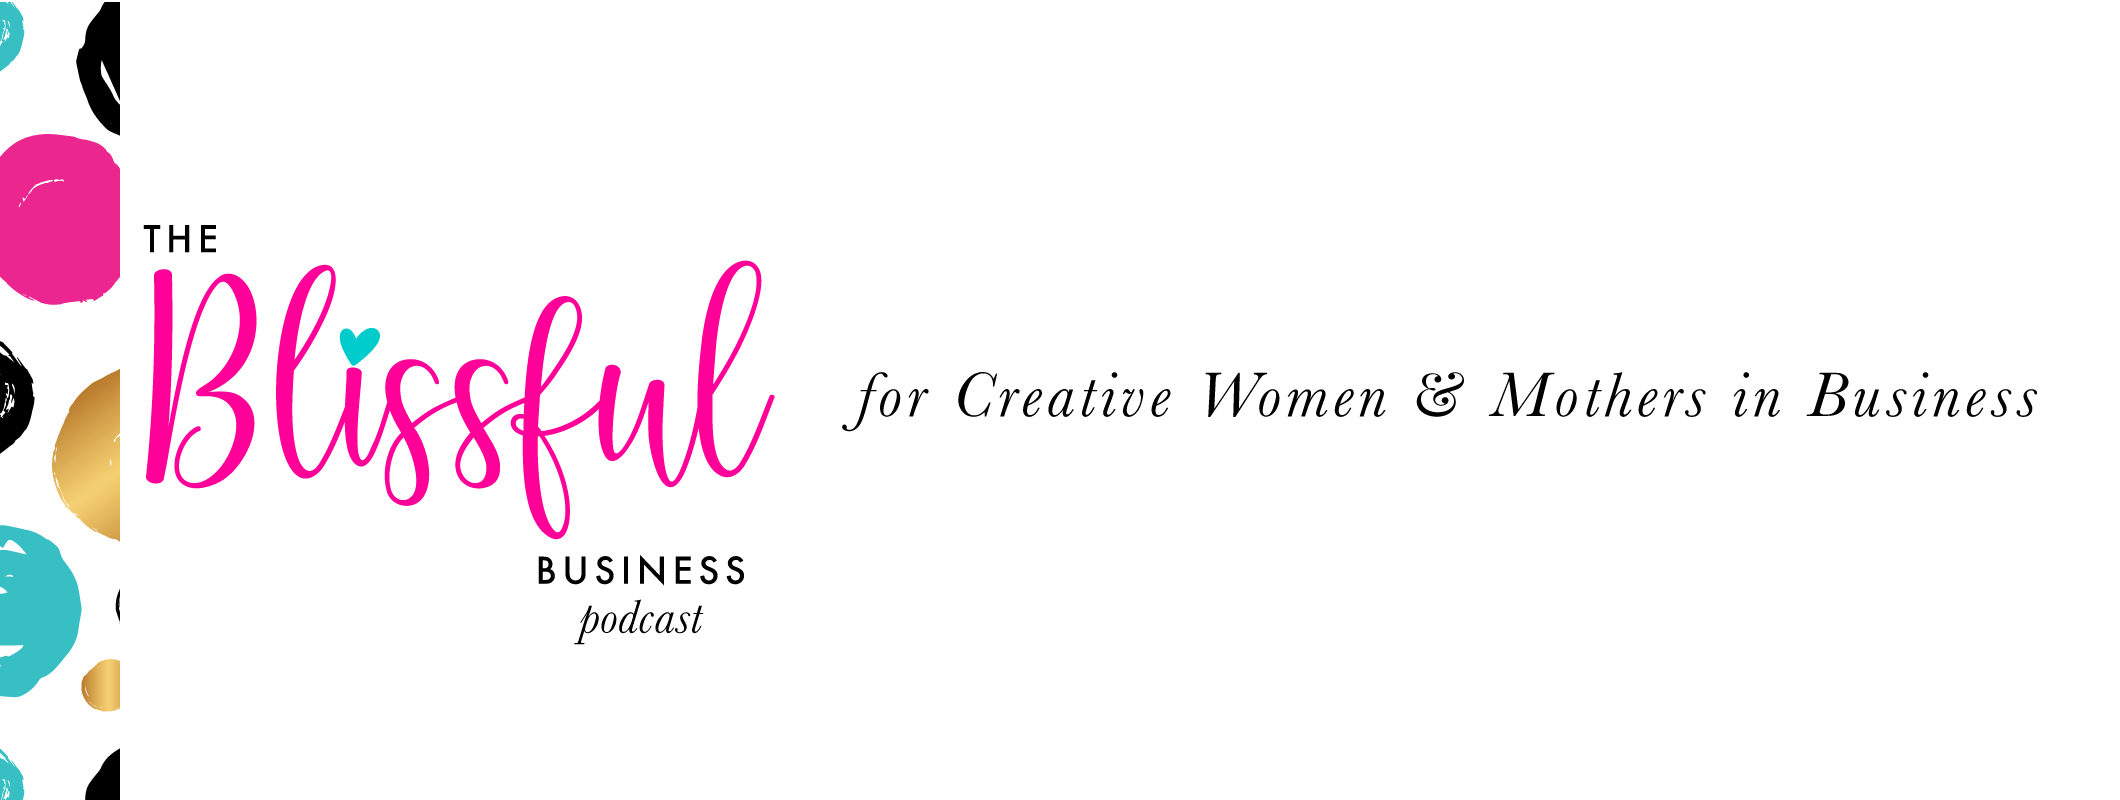 The Blissful Business Podcast Episode | BlissandFaith.com